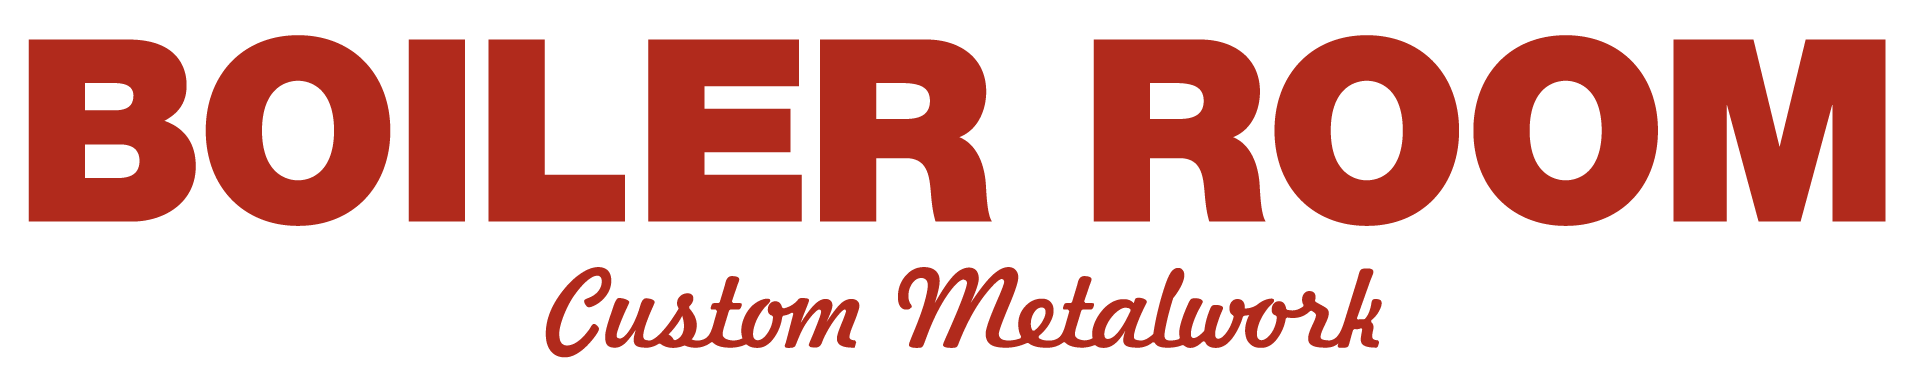 BoilerRoom_Logo_Red@3.png